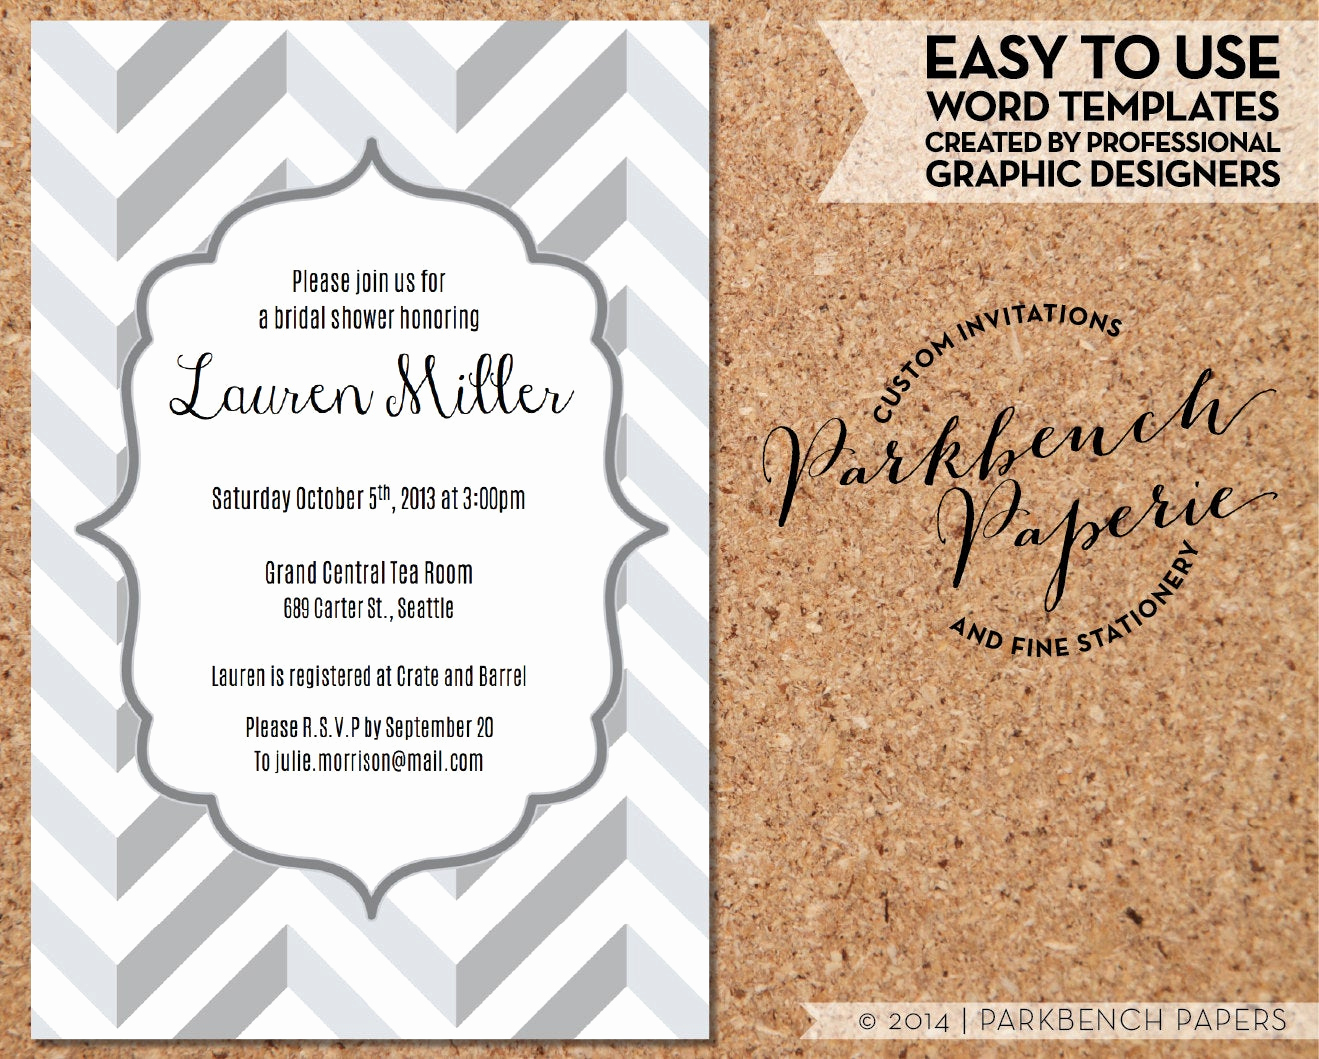 Bridal Shower Invitation Template Beautiful Bridal Shower Invitation Gray Chevron Diy Editable Word